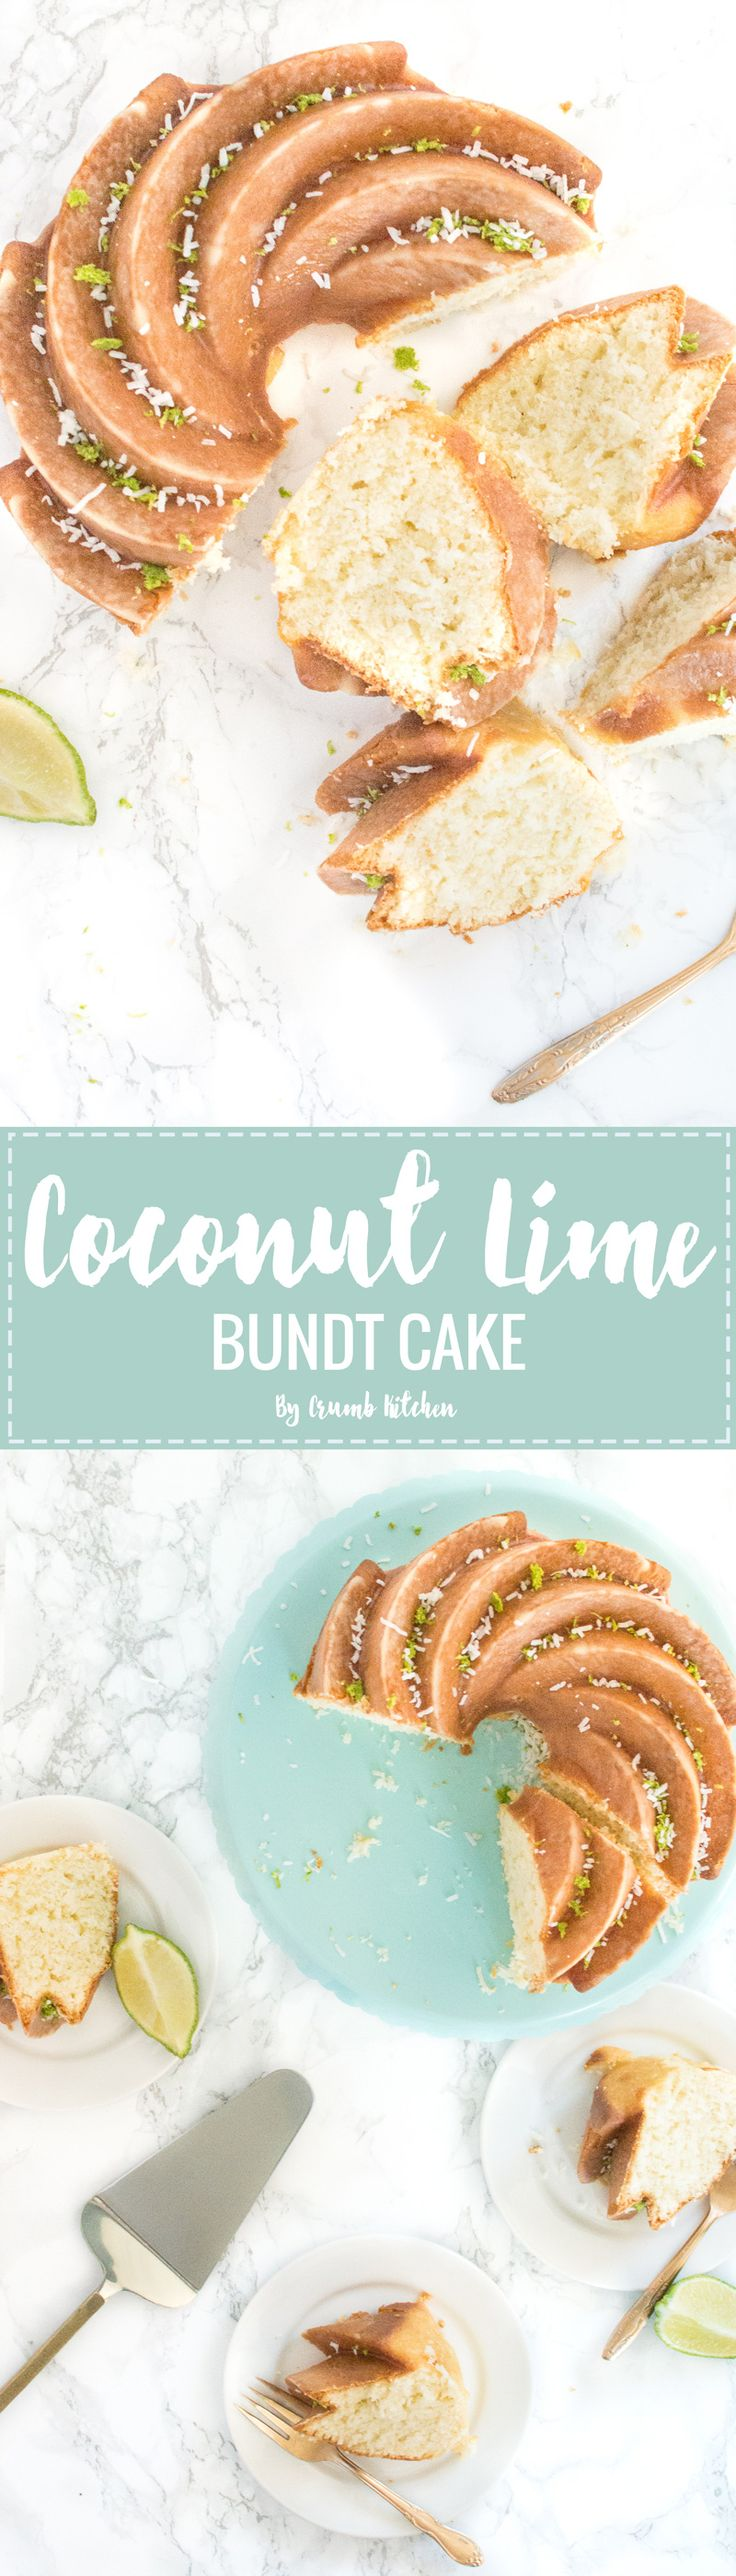 This shredded coconut and lime juice-infused Coconut Lime Bundt Cake makes for a light, moist treat on a warm spring or summer day.   Crumb Kitchen